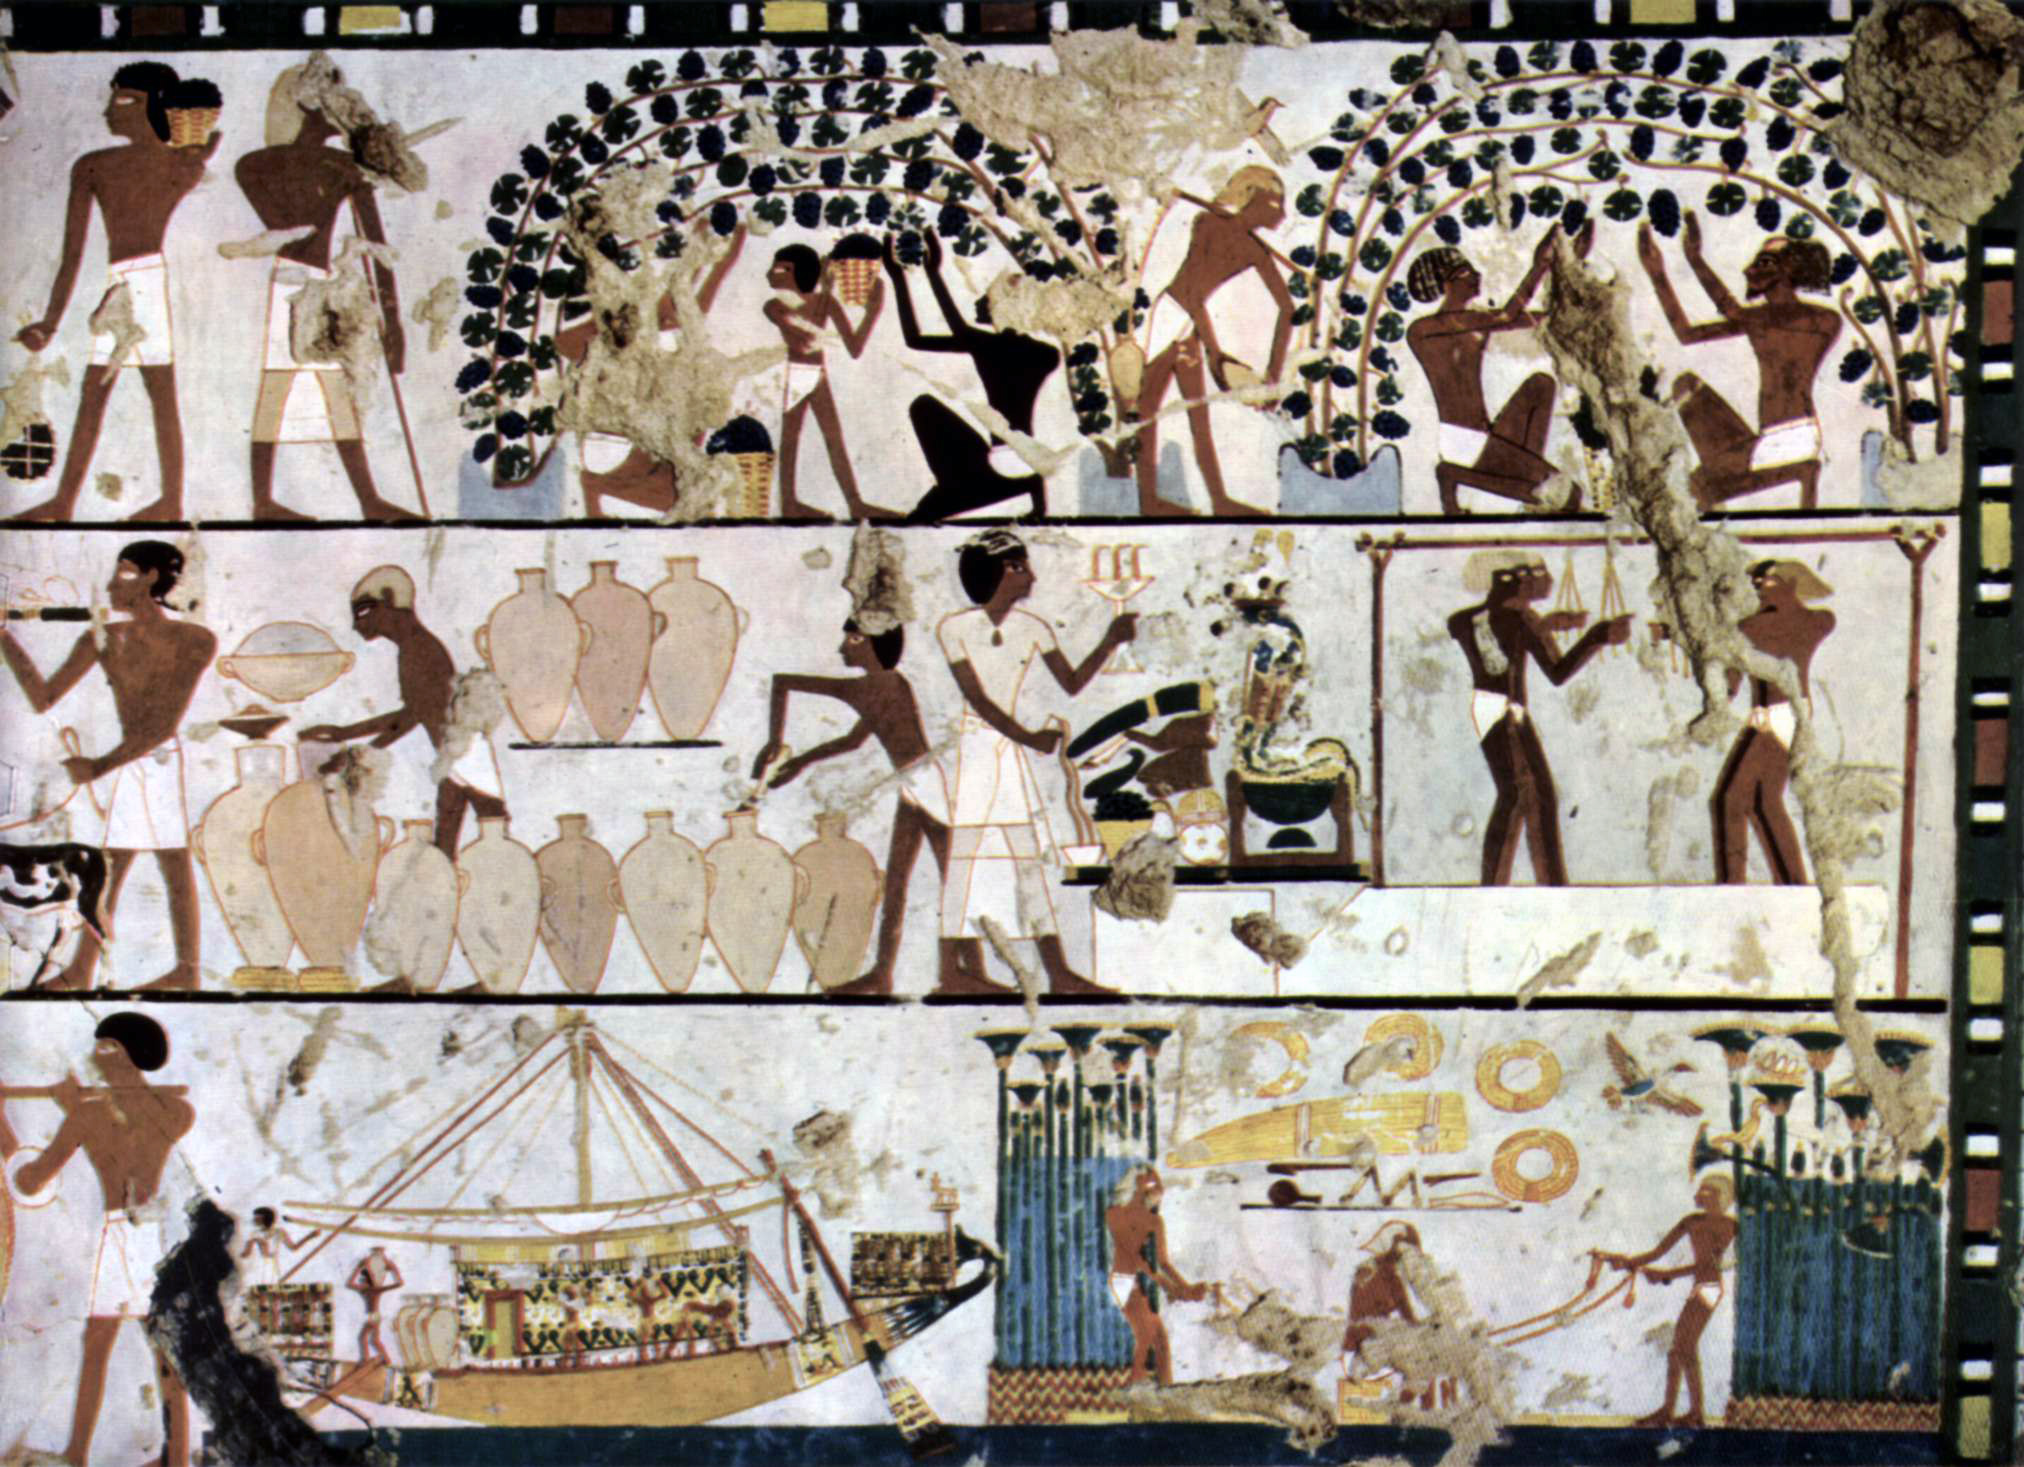 Egyptian winemaking 1500BCE (fermented grapes!).